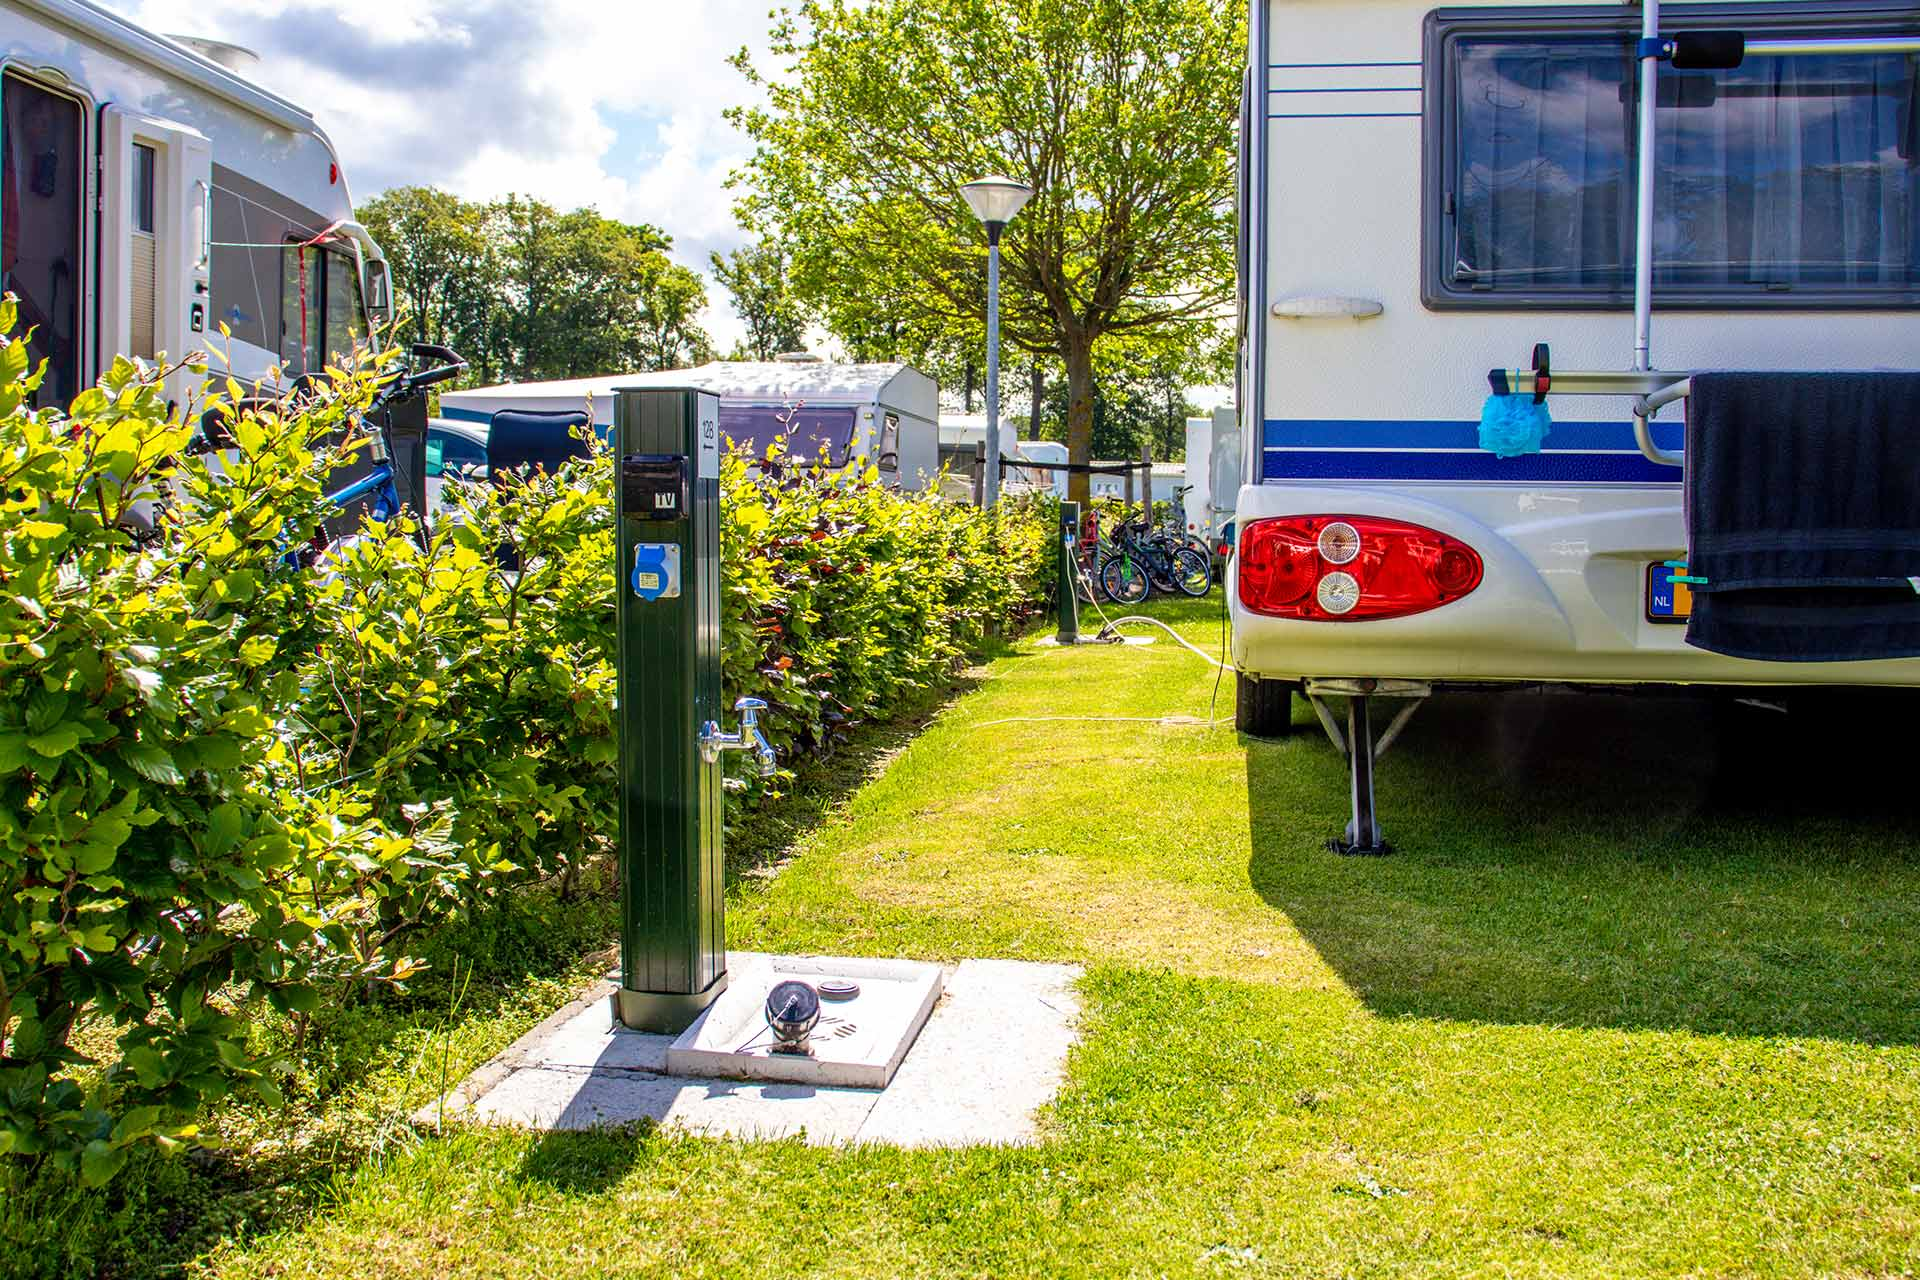 Seijsener Leisure services caravan hook ups